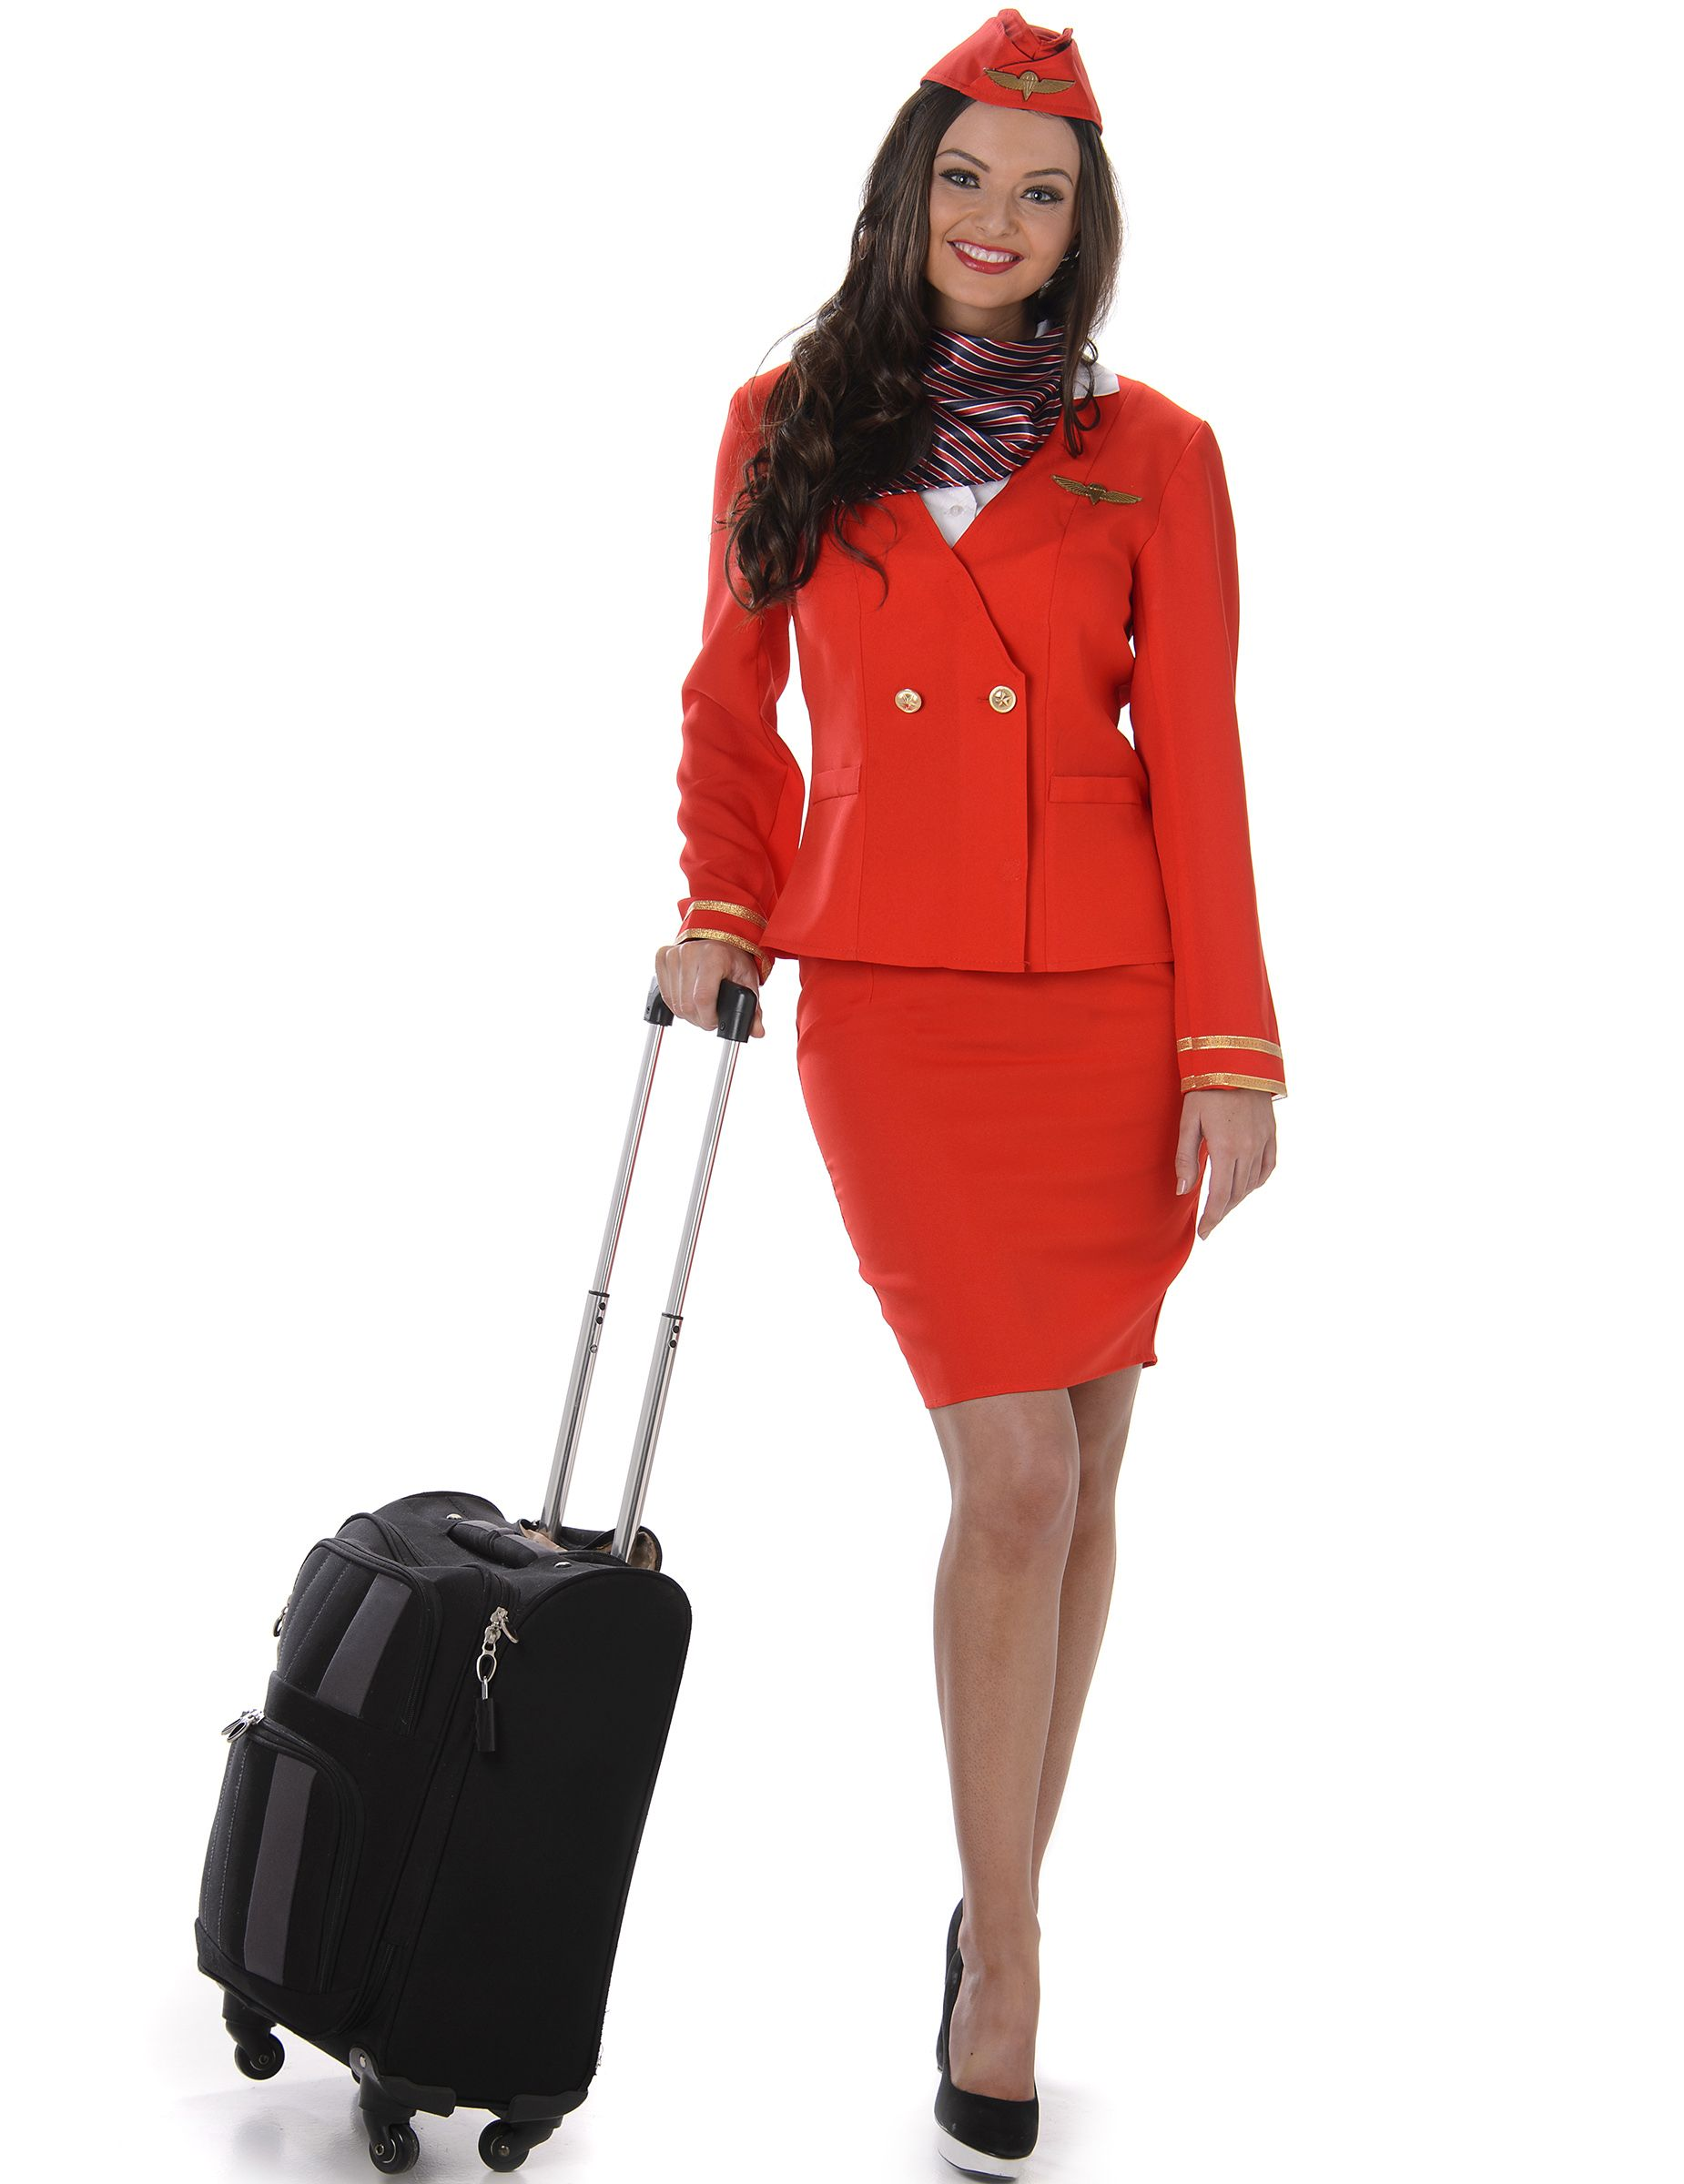 666d2ad9dae Red stewardess costume for women in 2019 | Costume for kids ...